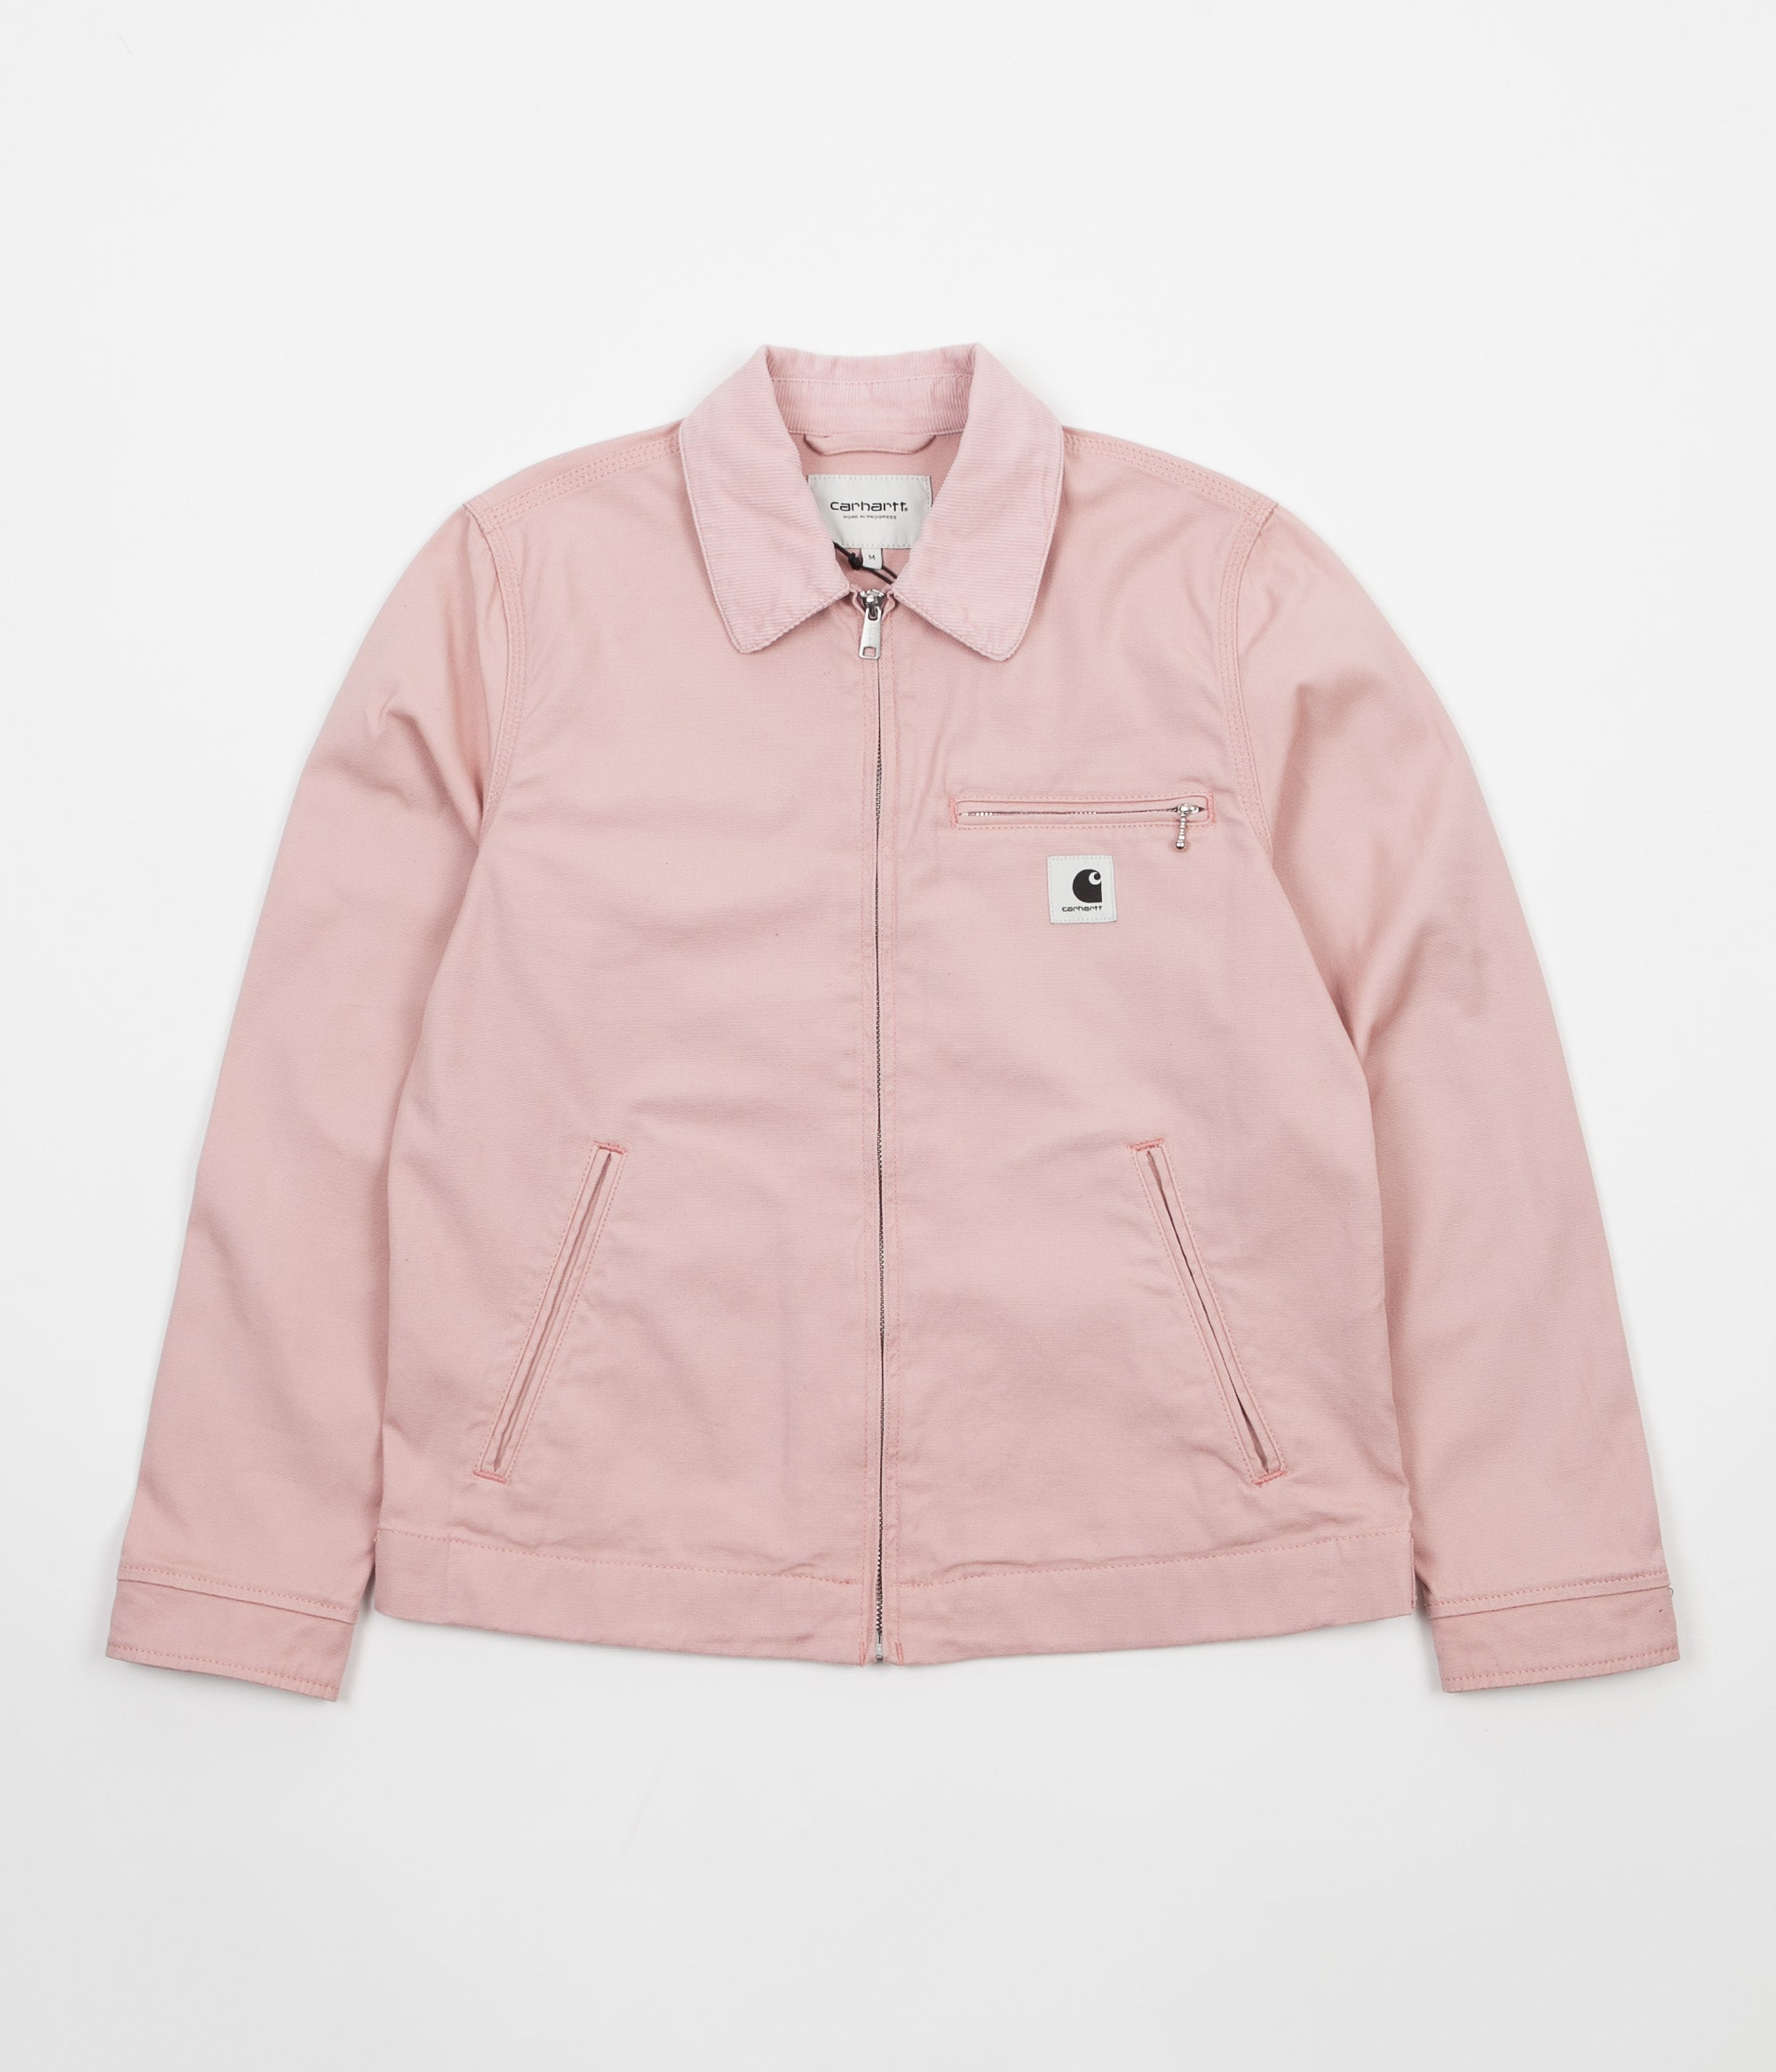 Carhartt Women's Detroit Jacket - Soft Rose